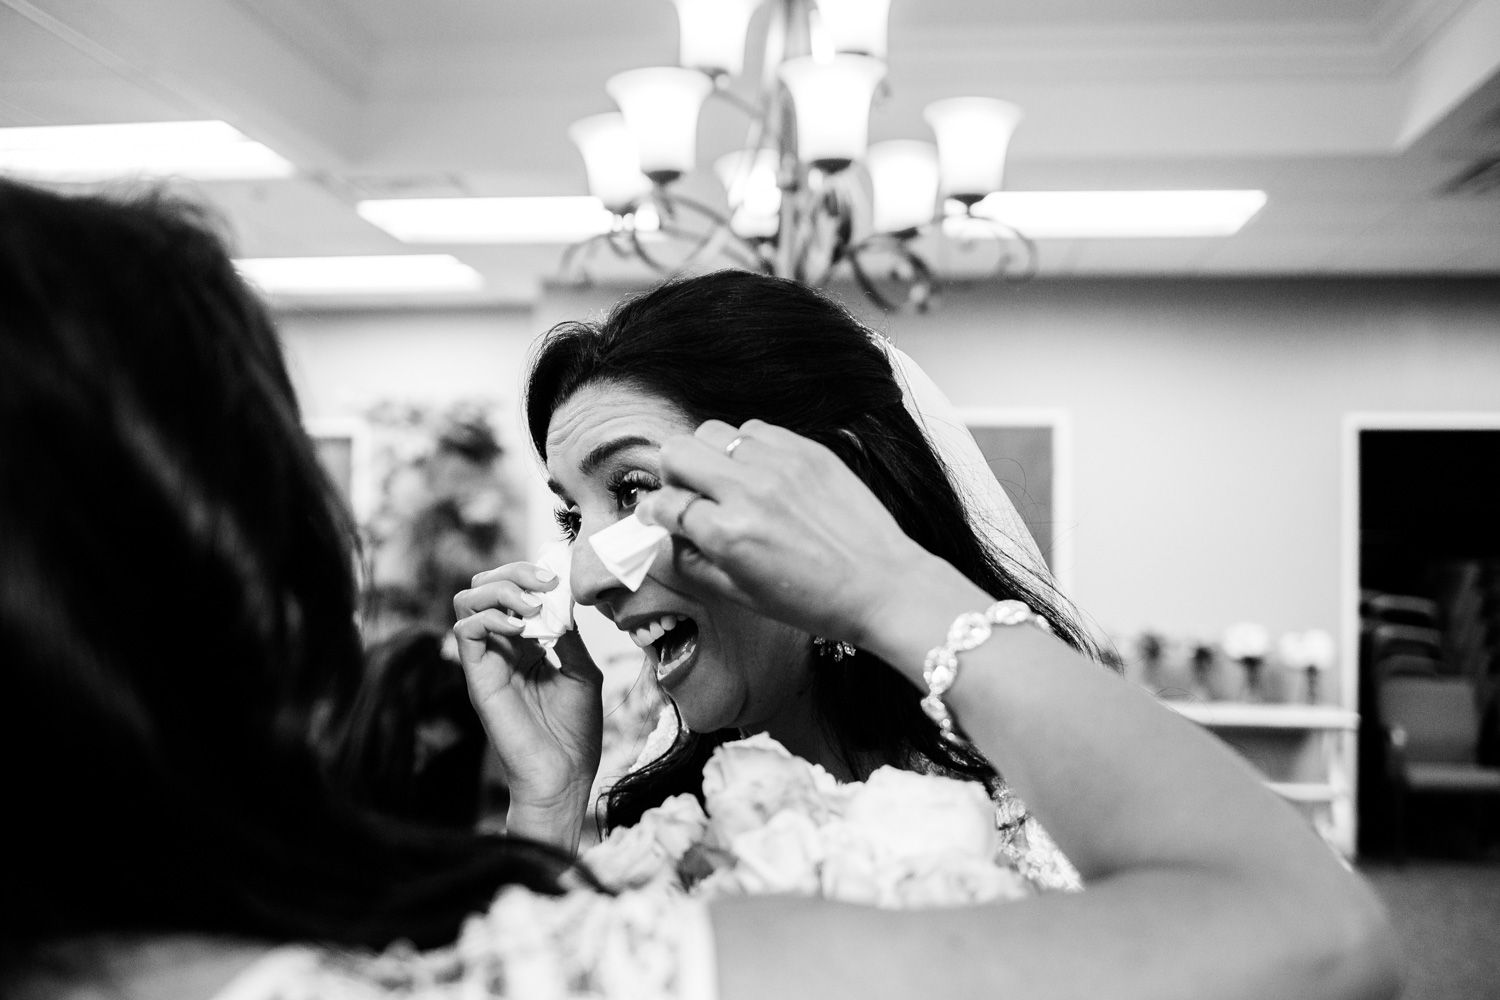 Bride wipes away tears after wedding ceremony